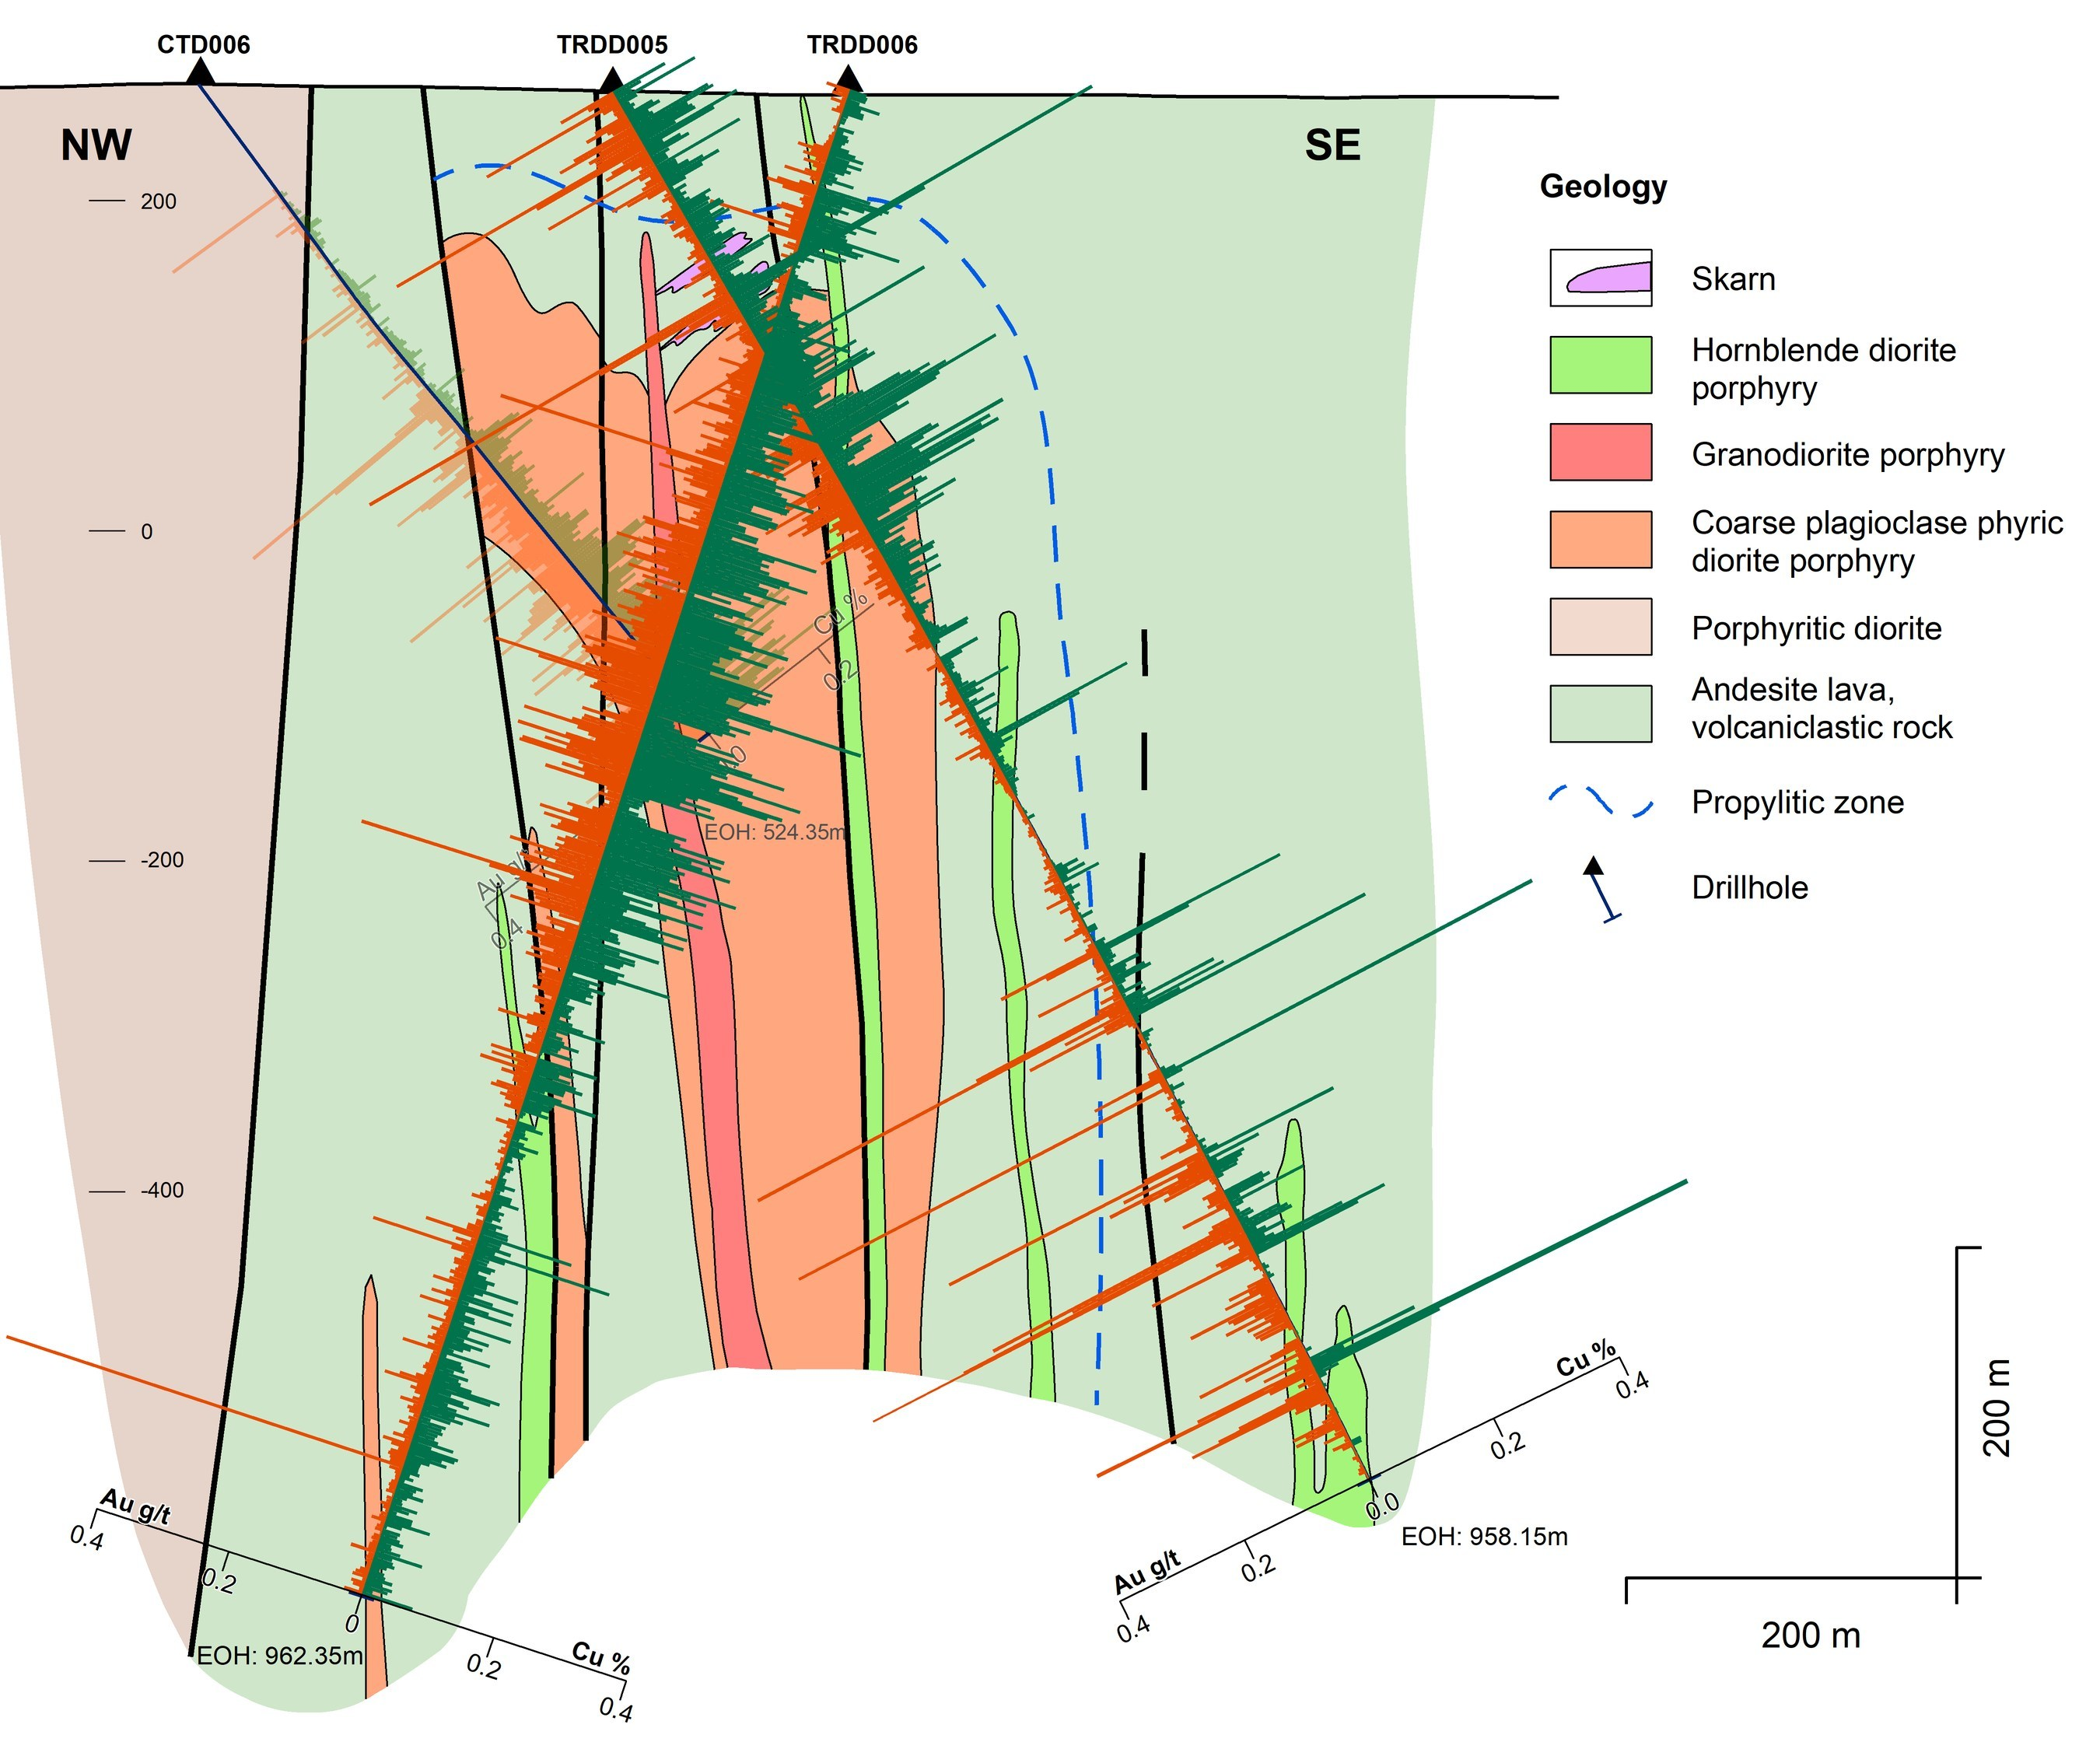 Figure 5: TRDD006 at the Mordialloc target provided extensive anomalous copper, gold and molybdenum intervals (CNW Group/Kincora Copper Limited)